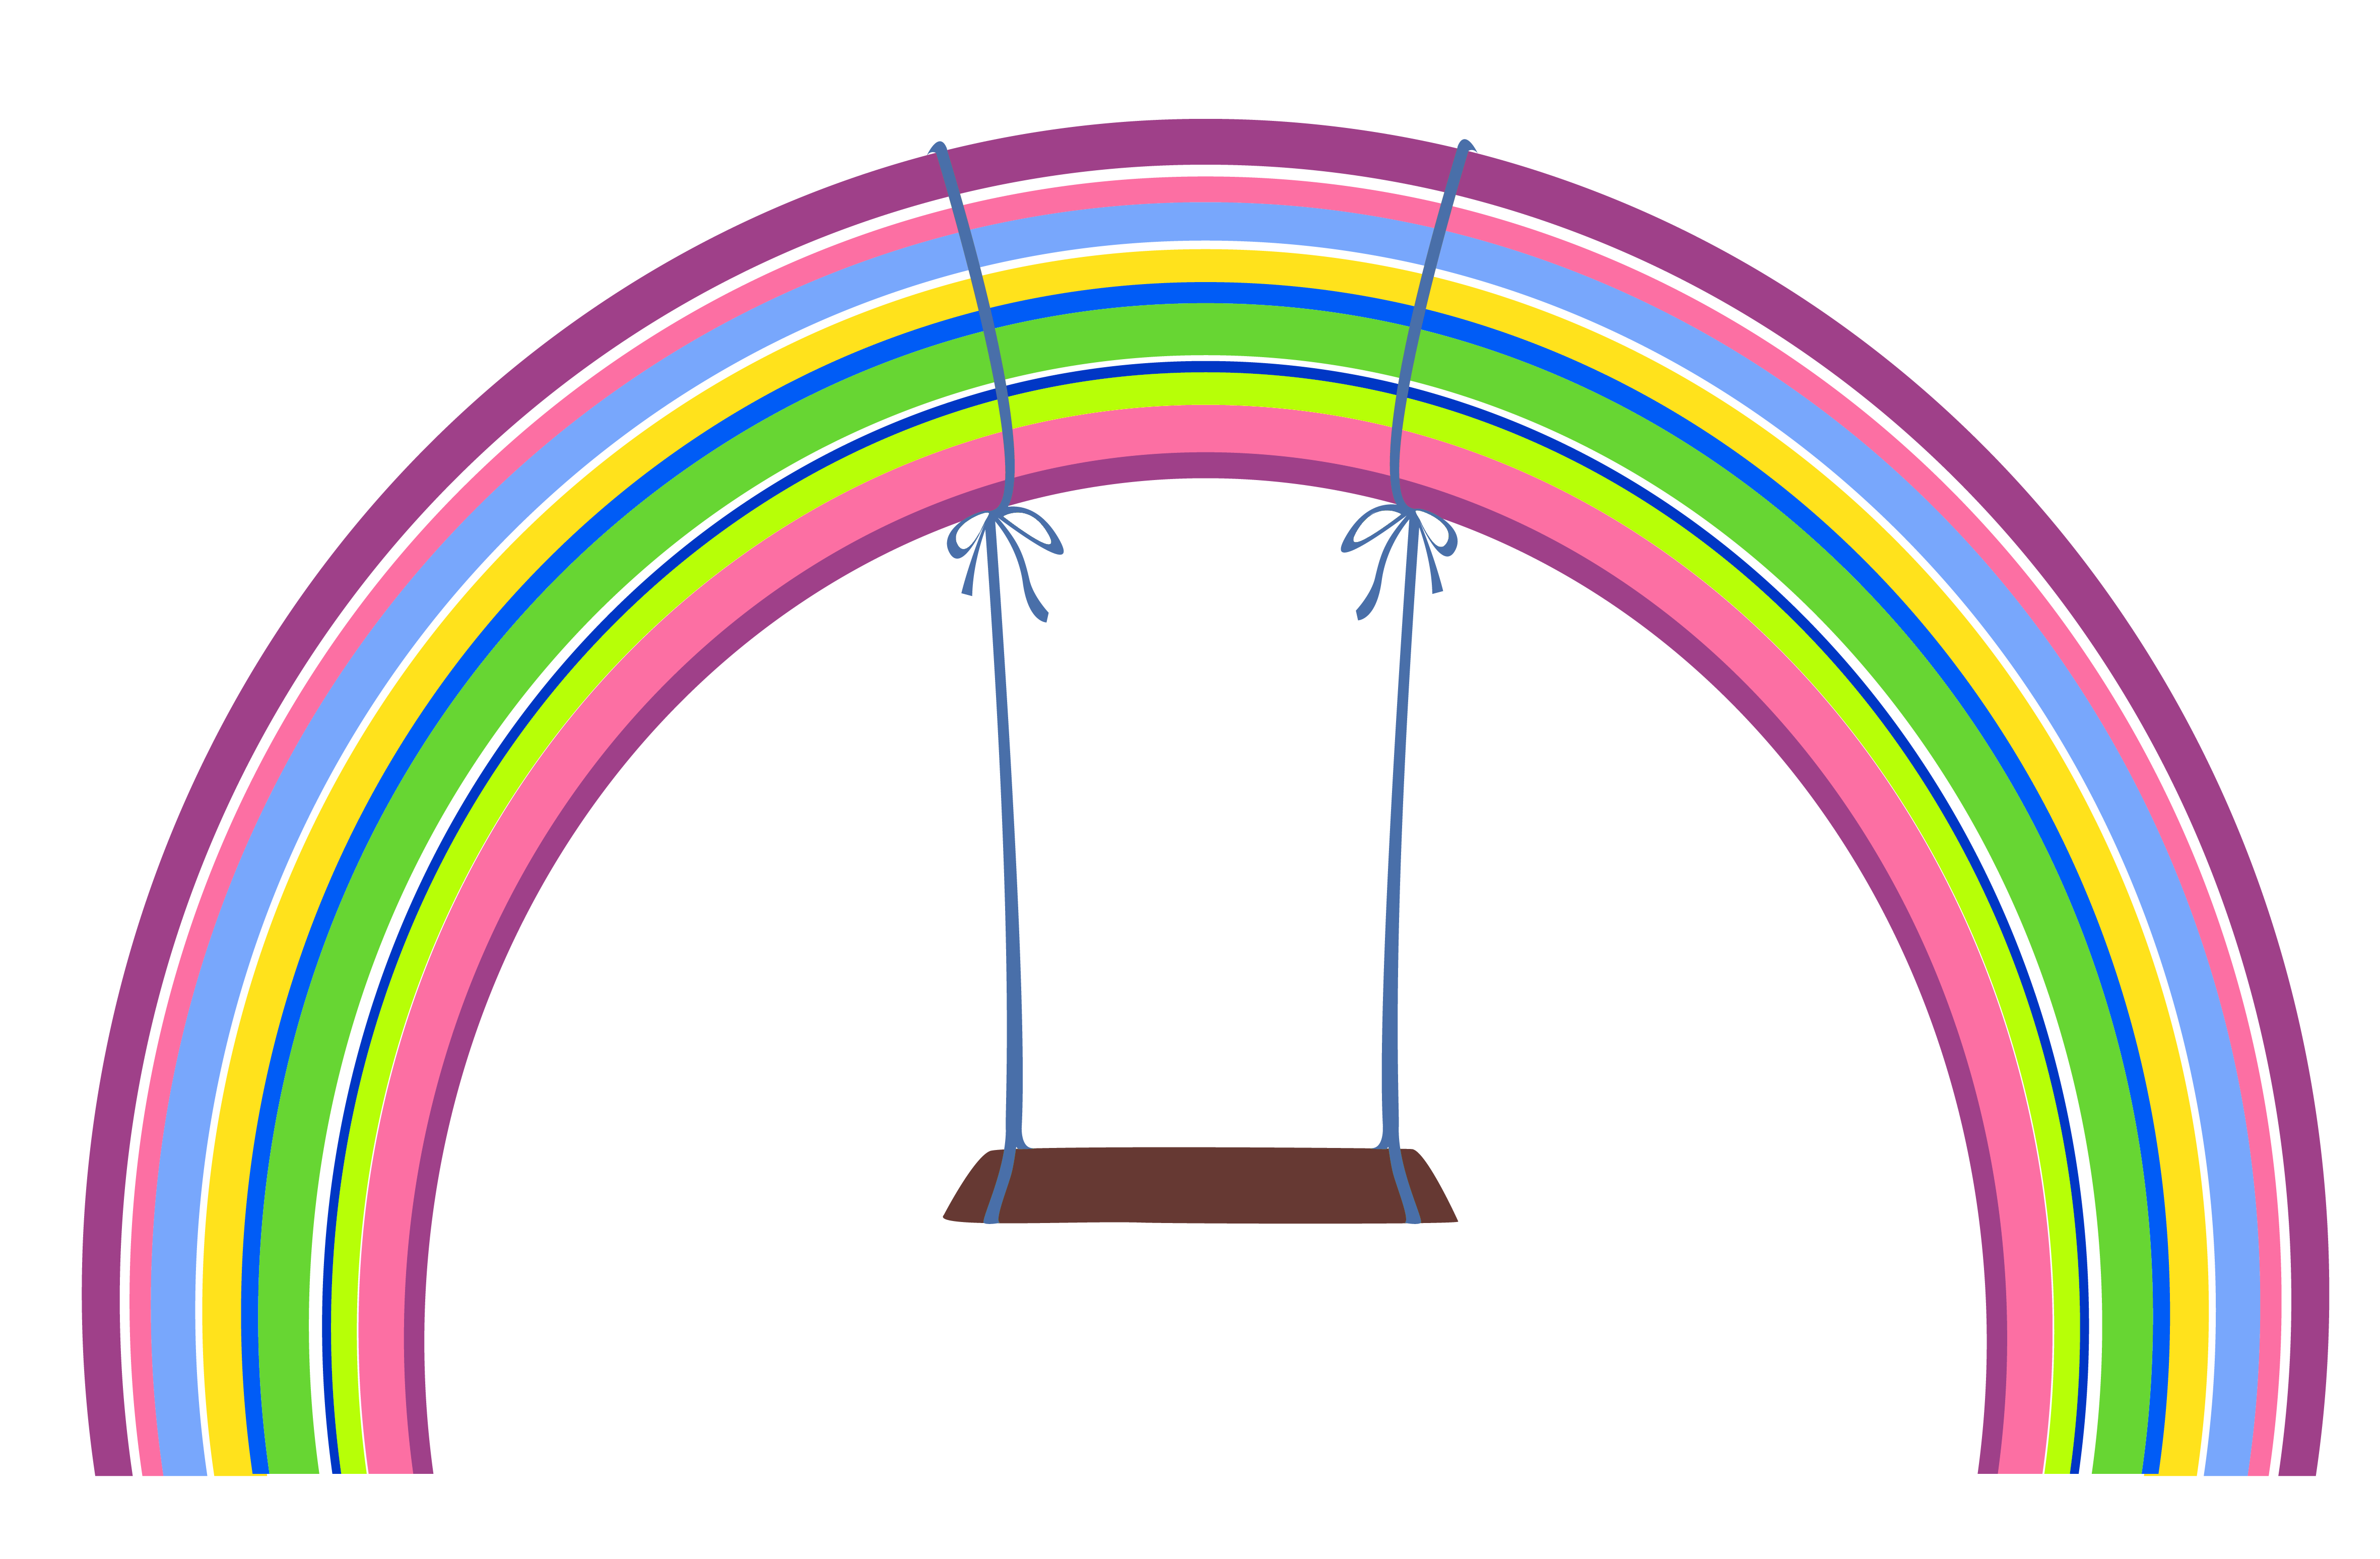 clipart royalty free library With swing png gallery. L clipart rainbow.